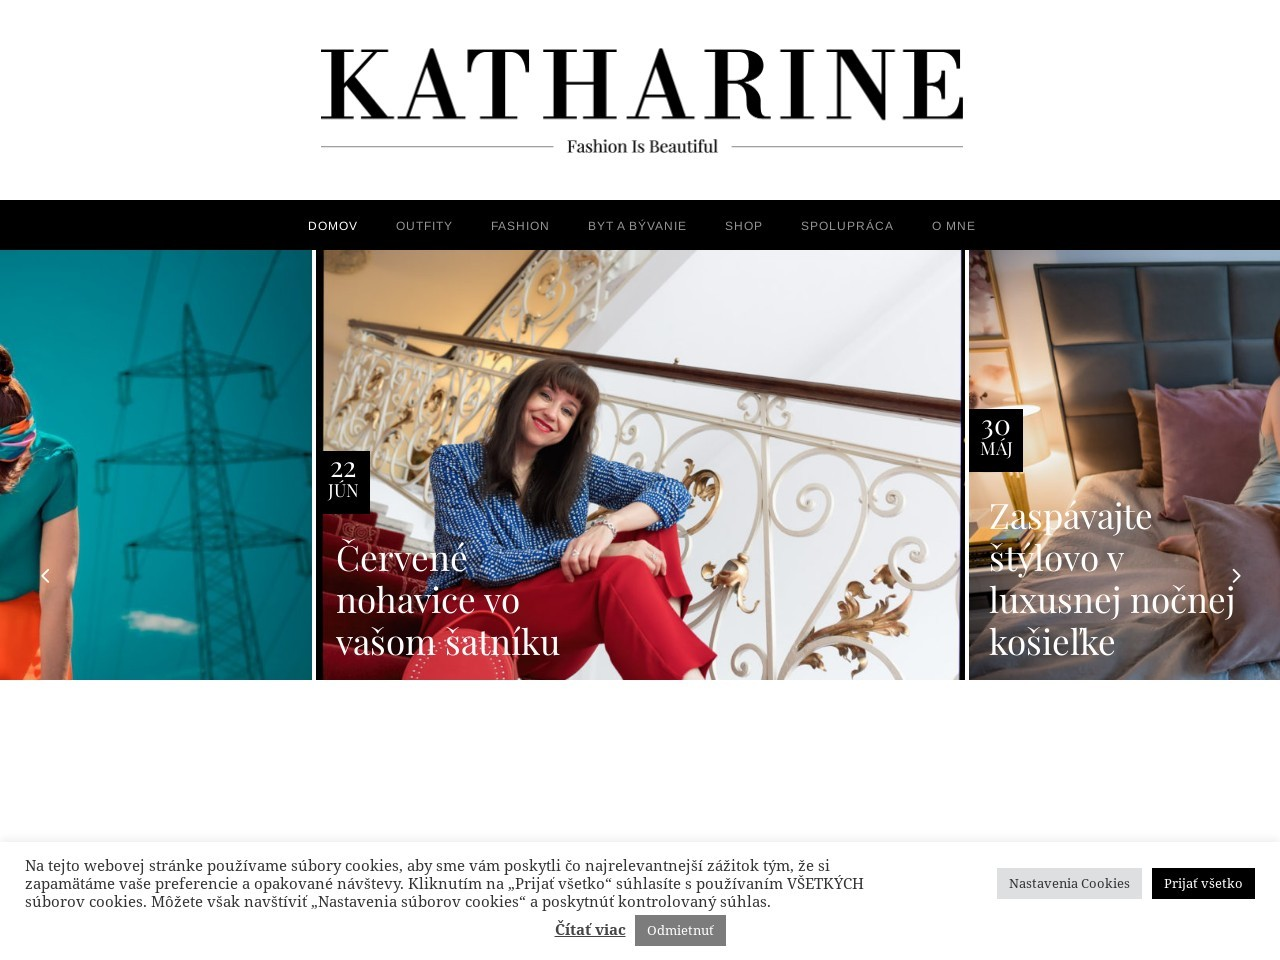 Katharine – fashion is beautiful